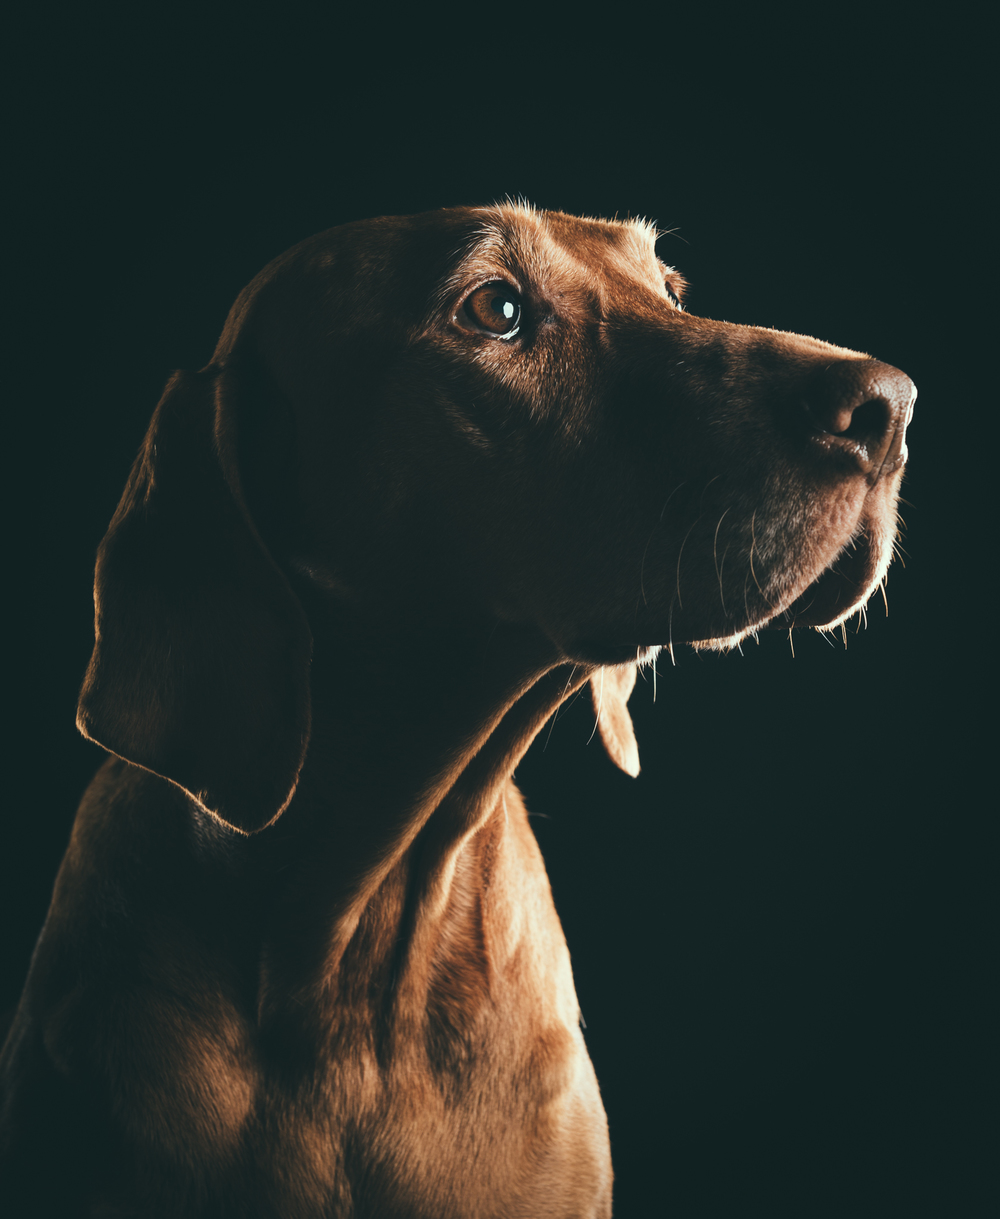 klaus-dyba-dog-photography-viszla